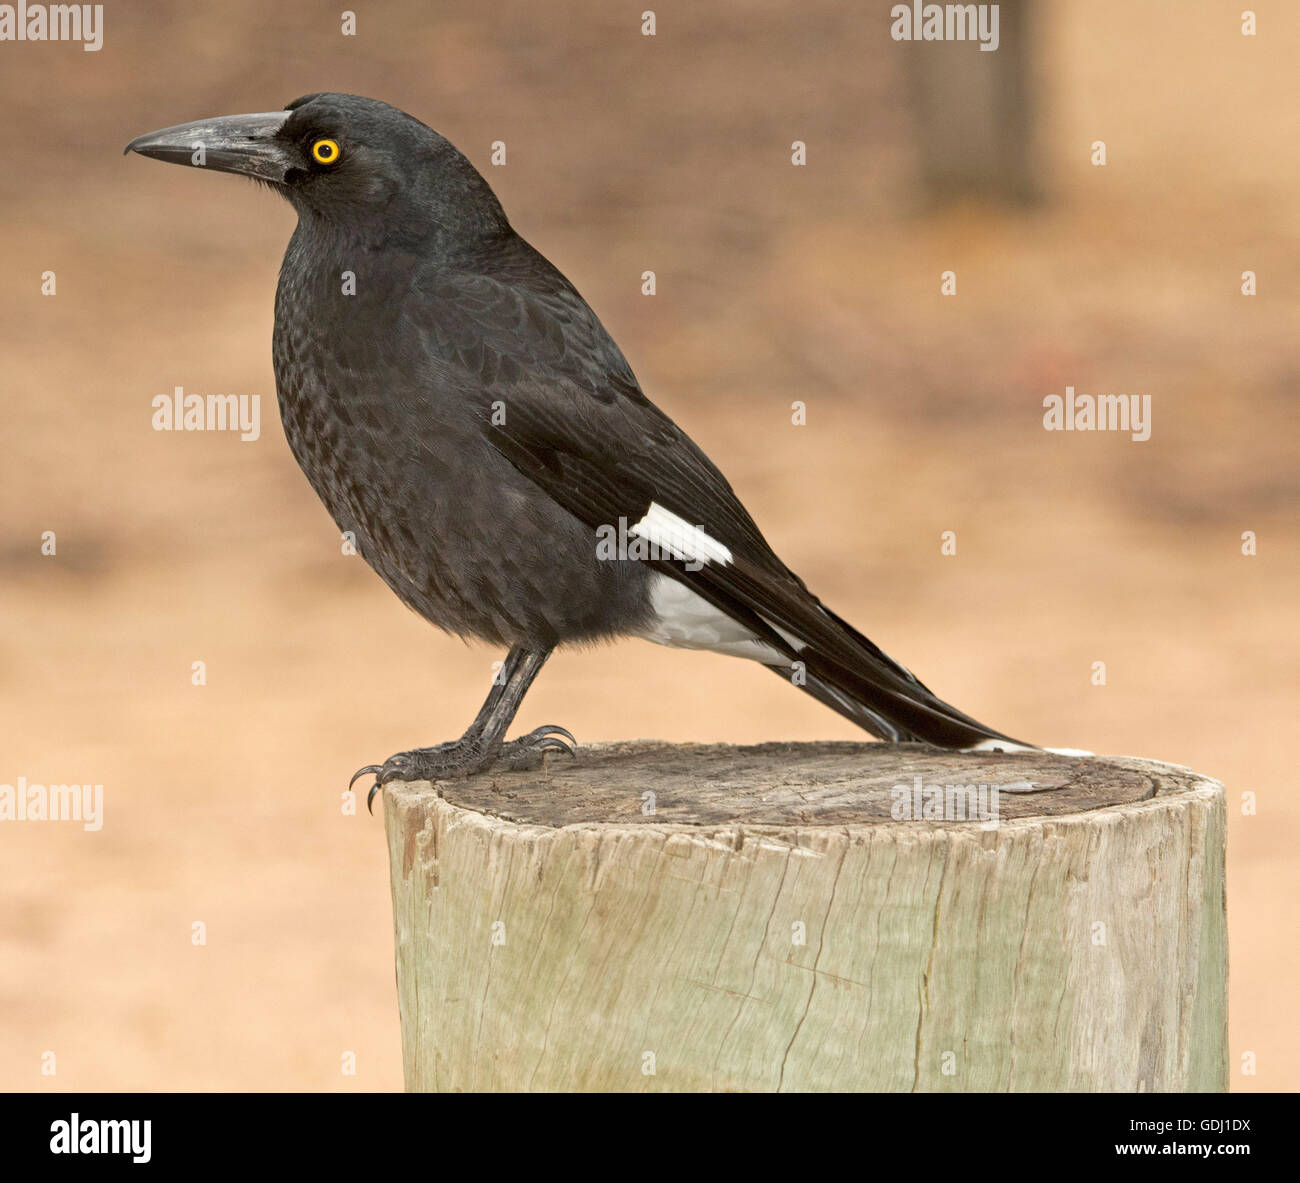 Black & white Australian pied currawong Strepera graculina with vivid yellow eye perched on wooden post against - Stock Image